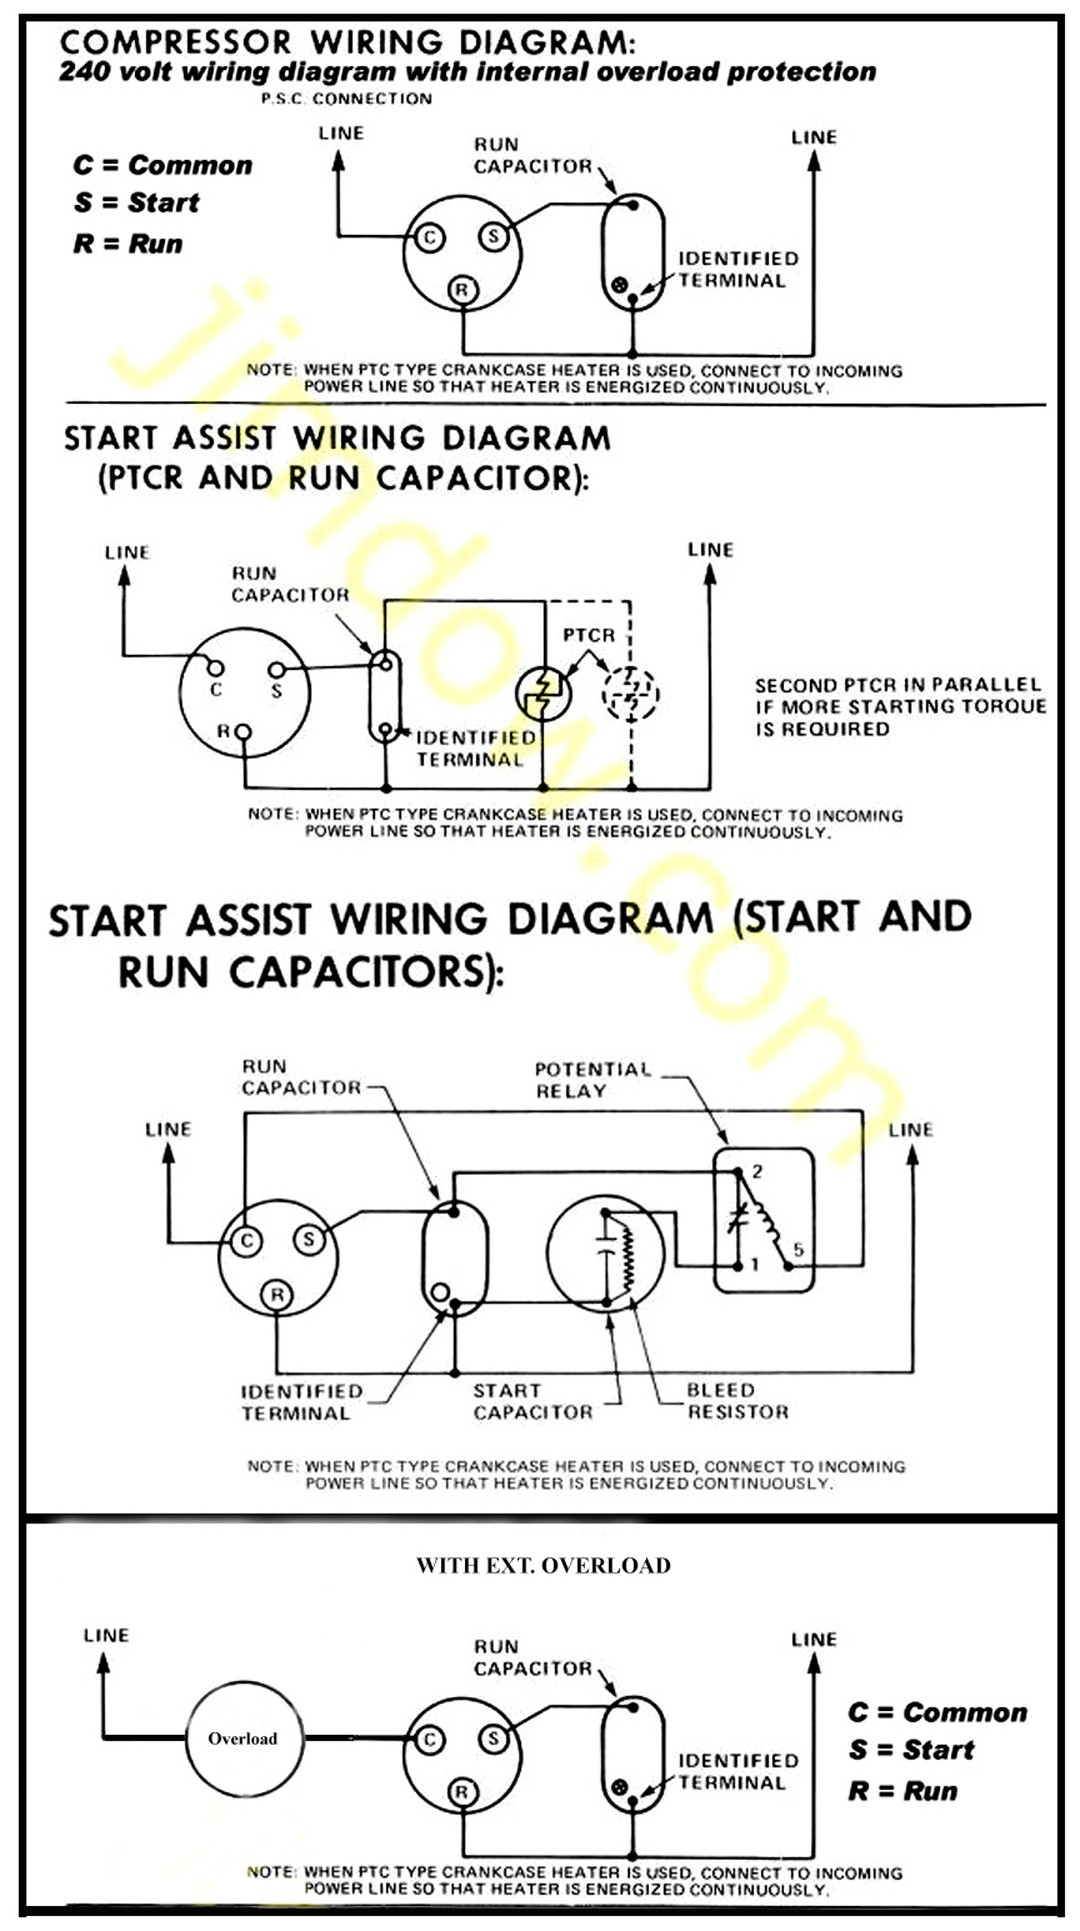 Unique Danfoss 12V Compressor Wiring Diagram New Embraco All - Embraco Compressor Wiring Diagram